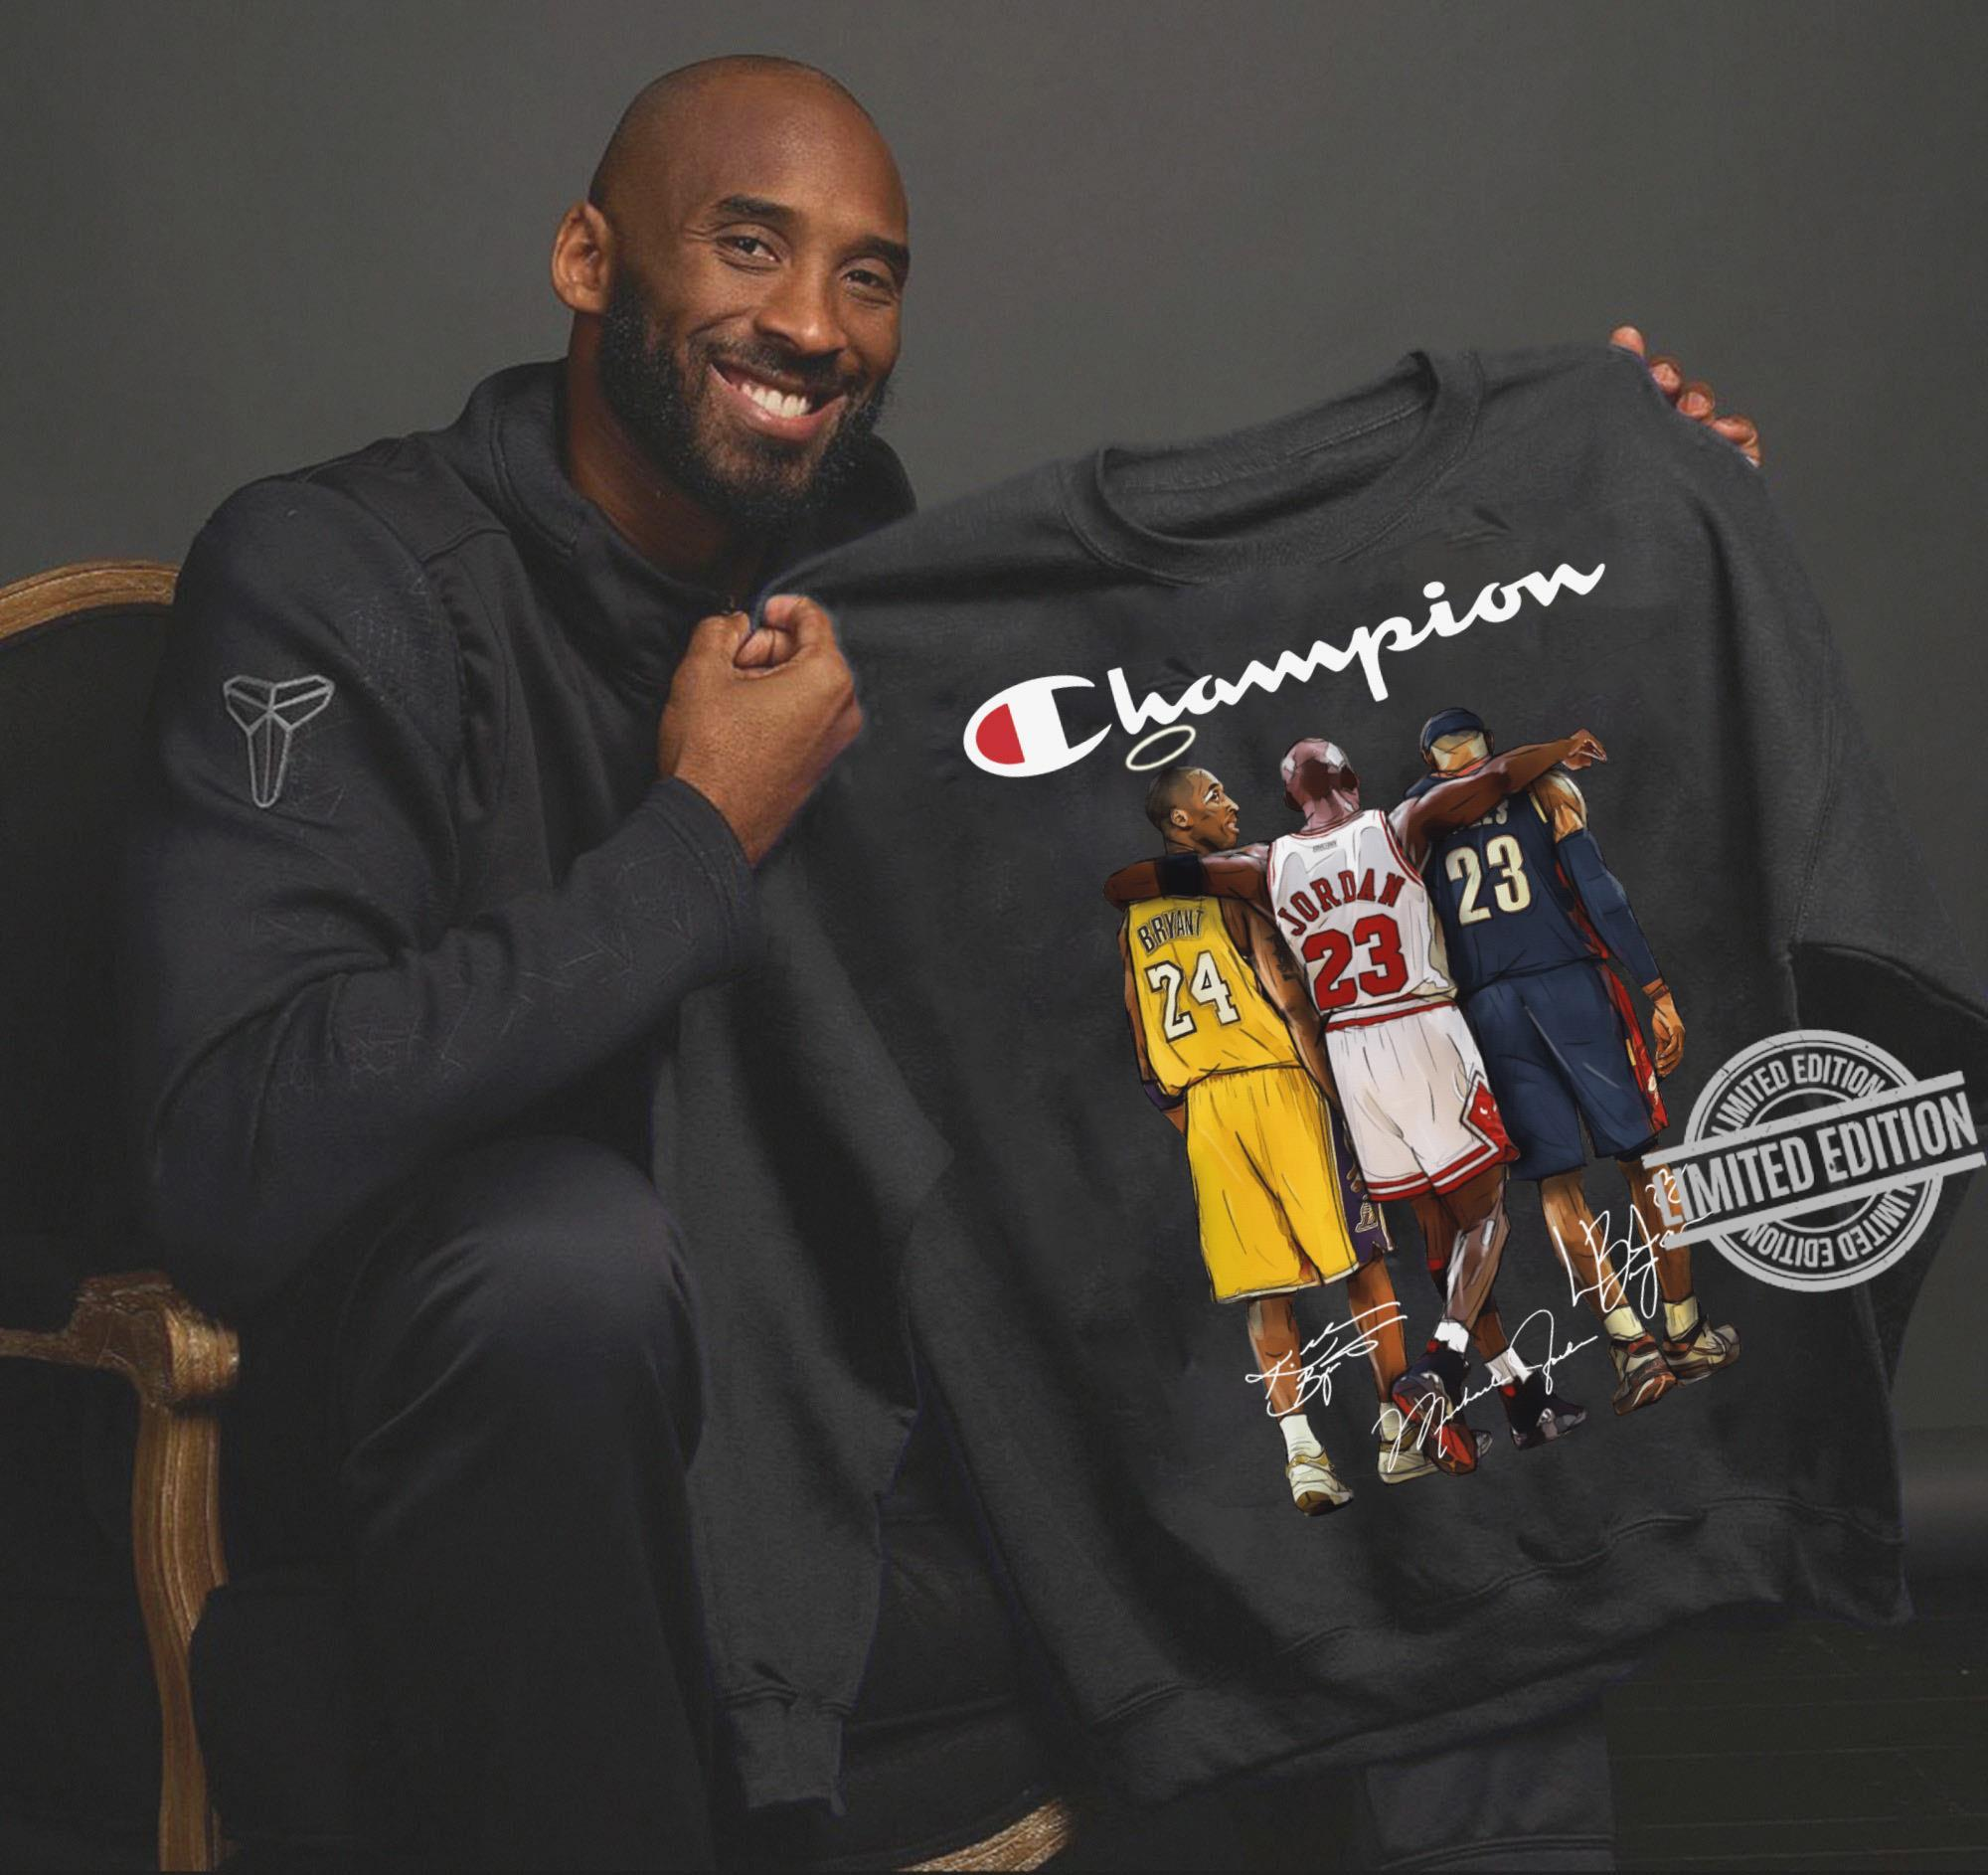 Kobe Bryant Michael Jordan LeBron James Champion Shirt